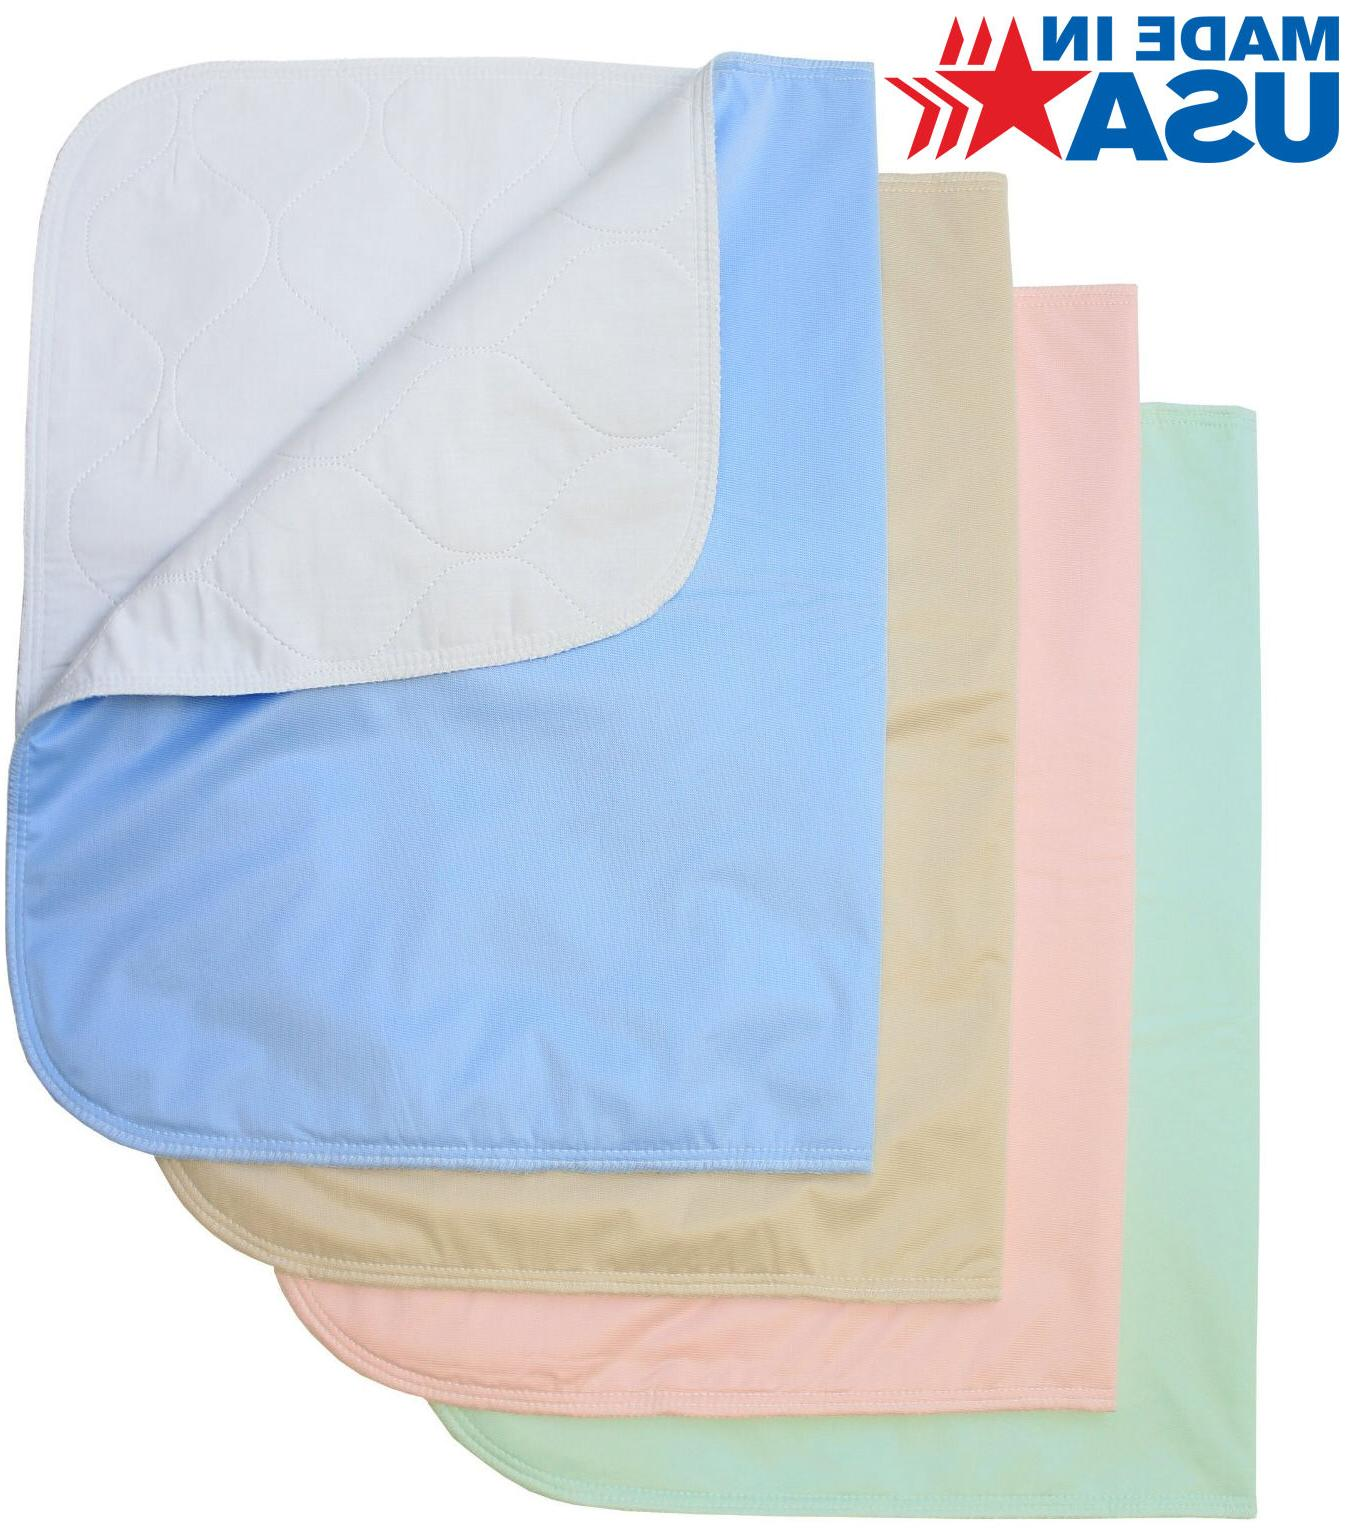 Washable Bed Pads / Reusable Incontinence Underpads 24x36 -